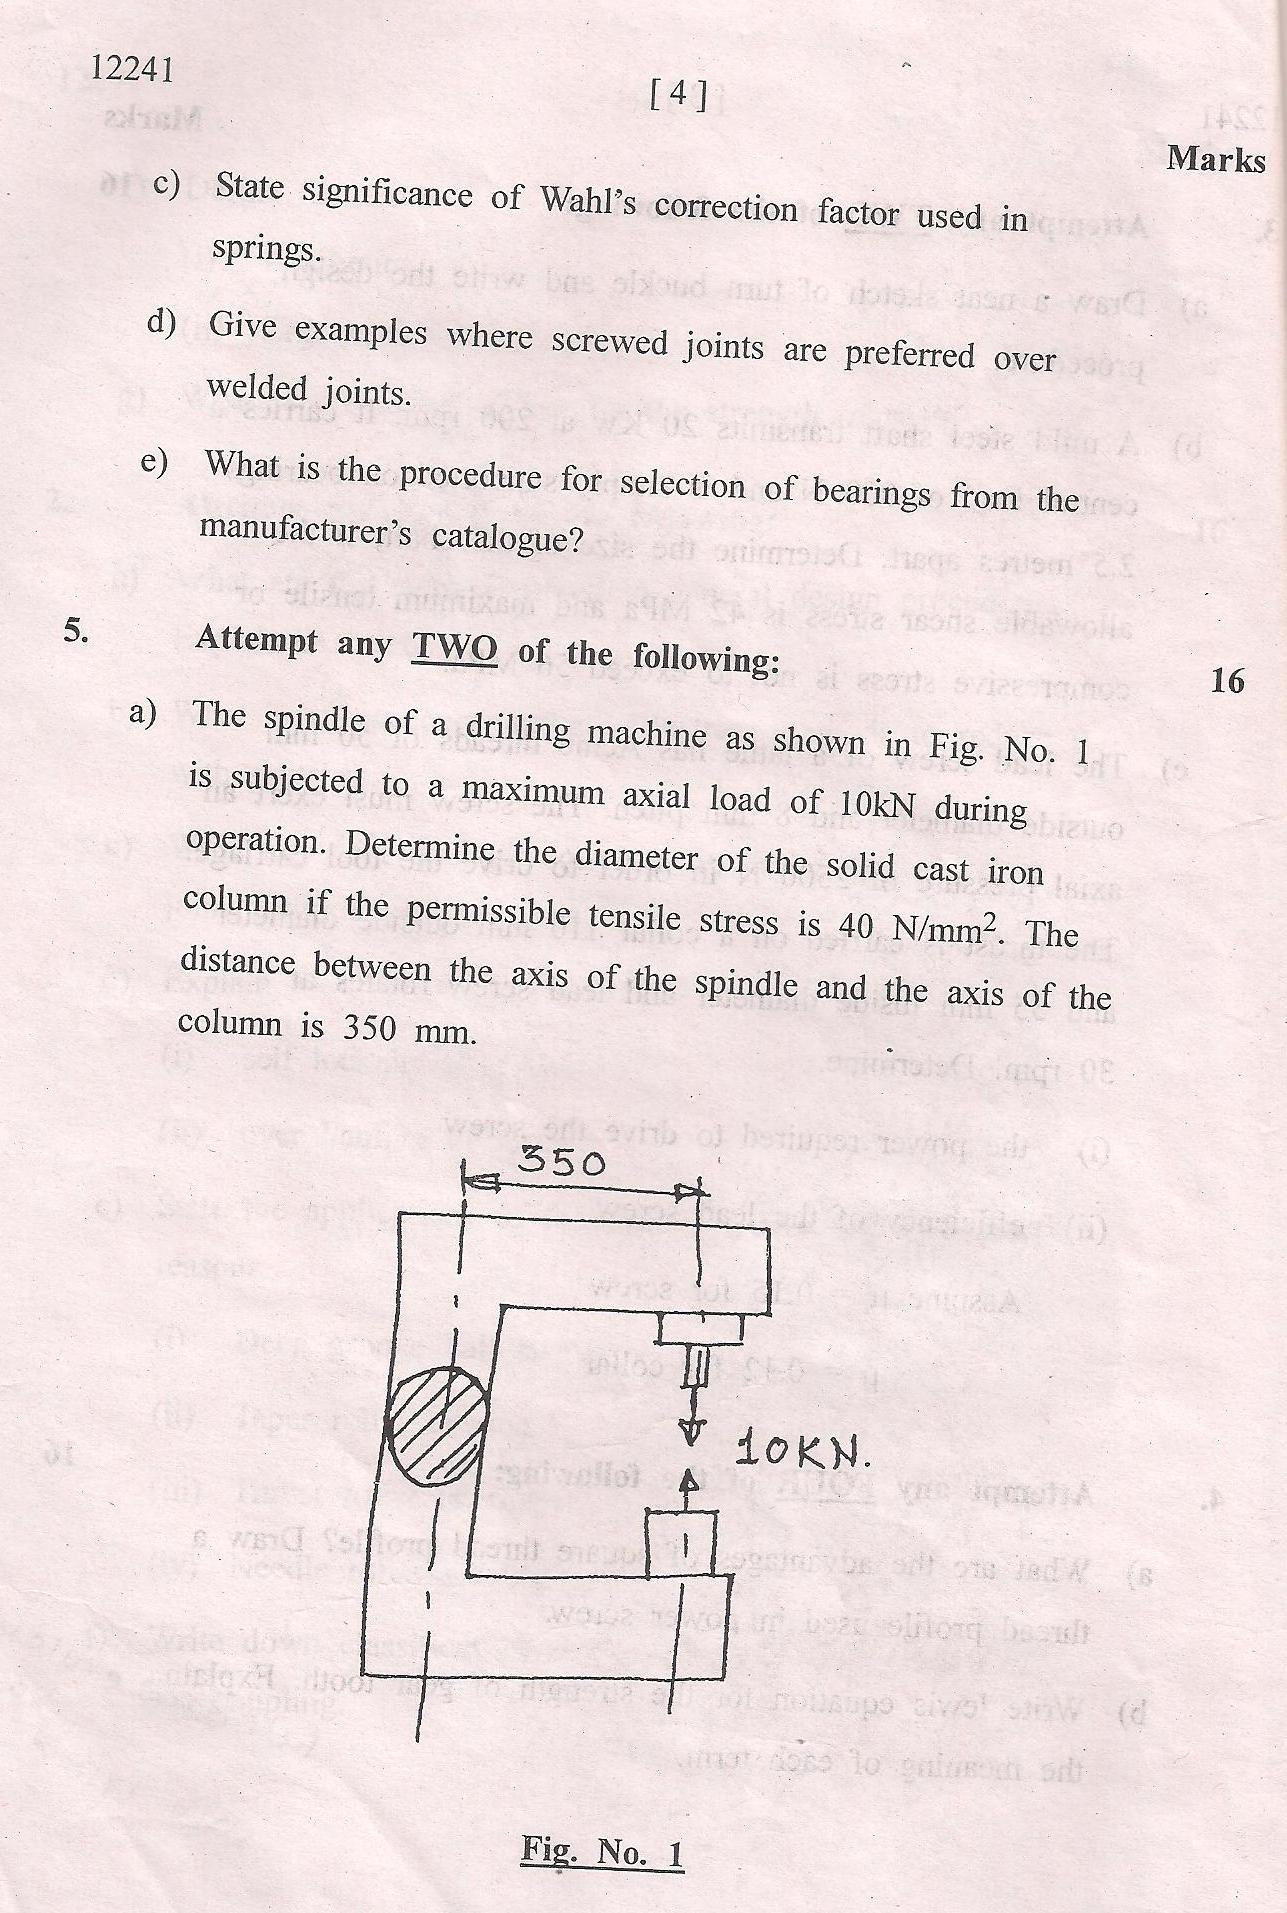 mechanical technical questions pdf download